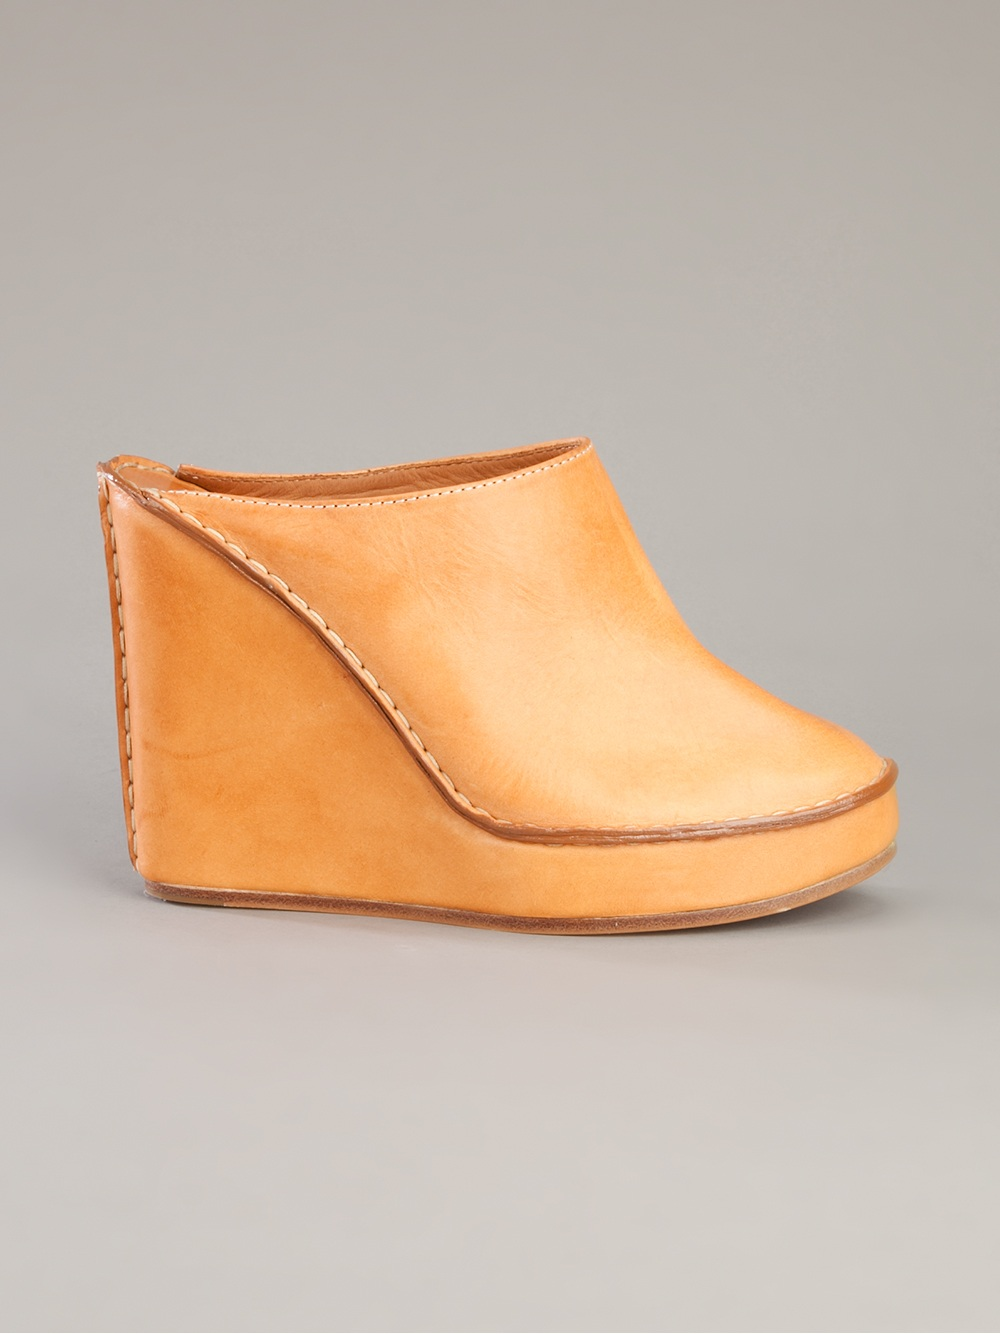 Chlo 233 Leather Wedge Mules In Brown Tan Lyst